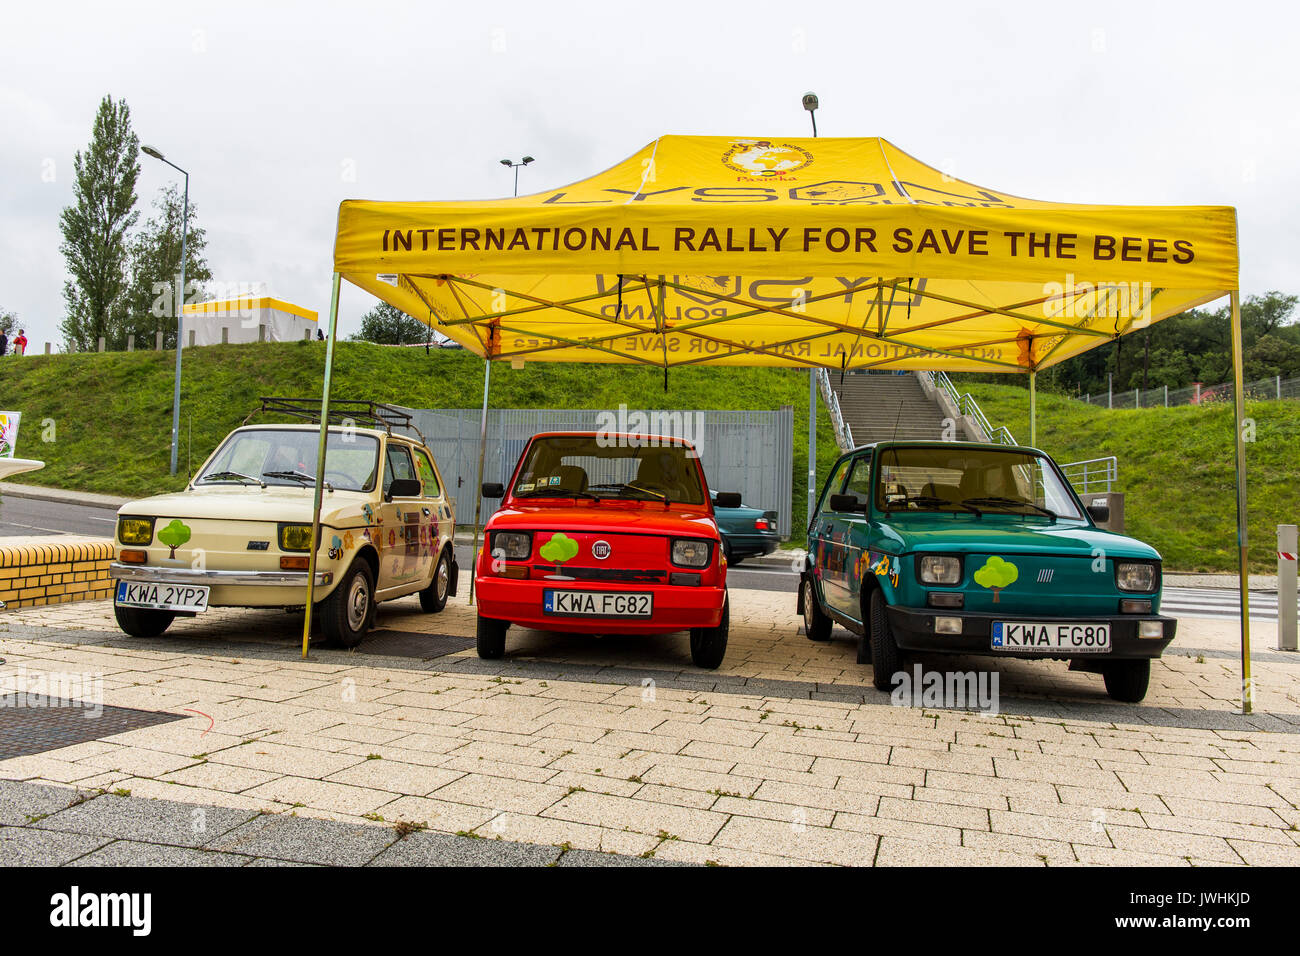 Bielsko-Biala, Poland. 12th Aug, 2017. International automotive trade fairs - MotoShow Bielsko-Biala. Three fiat 126p (polish - maluch) painted in flowers parked under yellow umbrella and promoting an international rally for save the bees. Credit: Lukasz Obermann/Alamy Live News - Stock Image